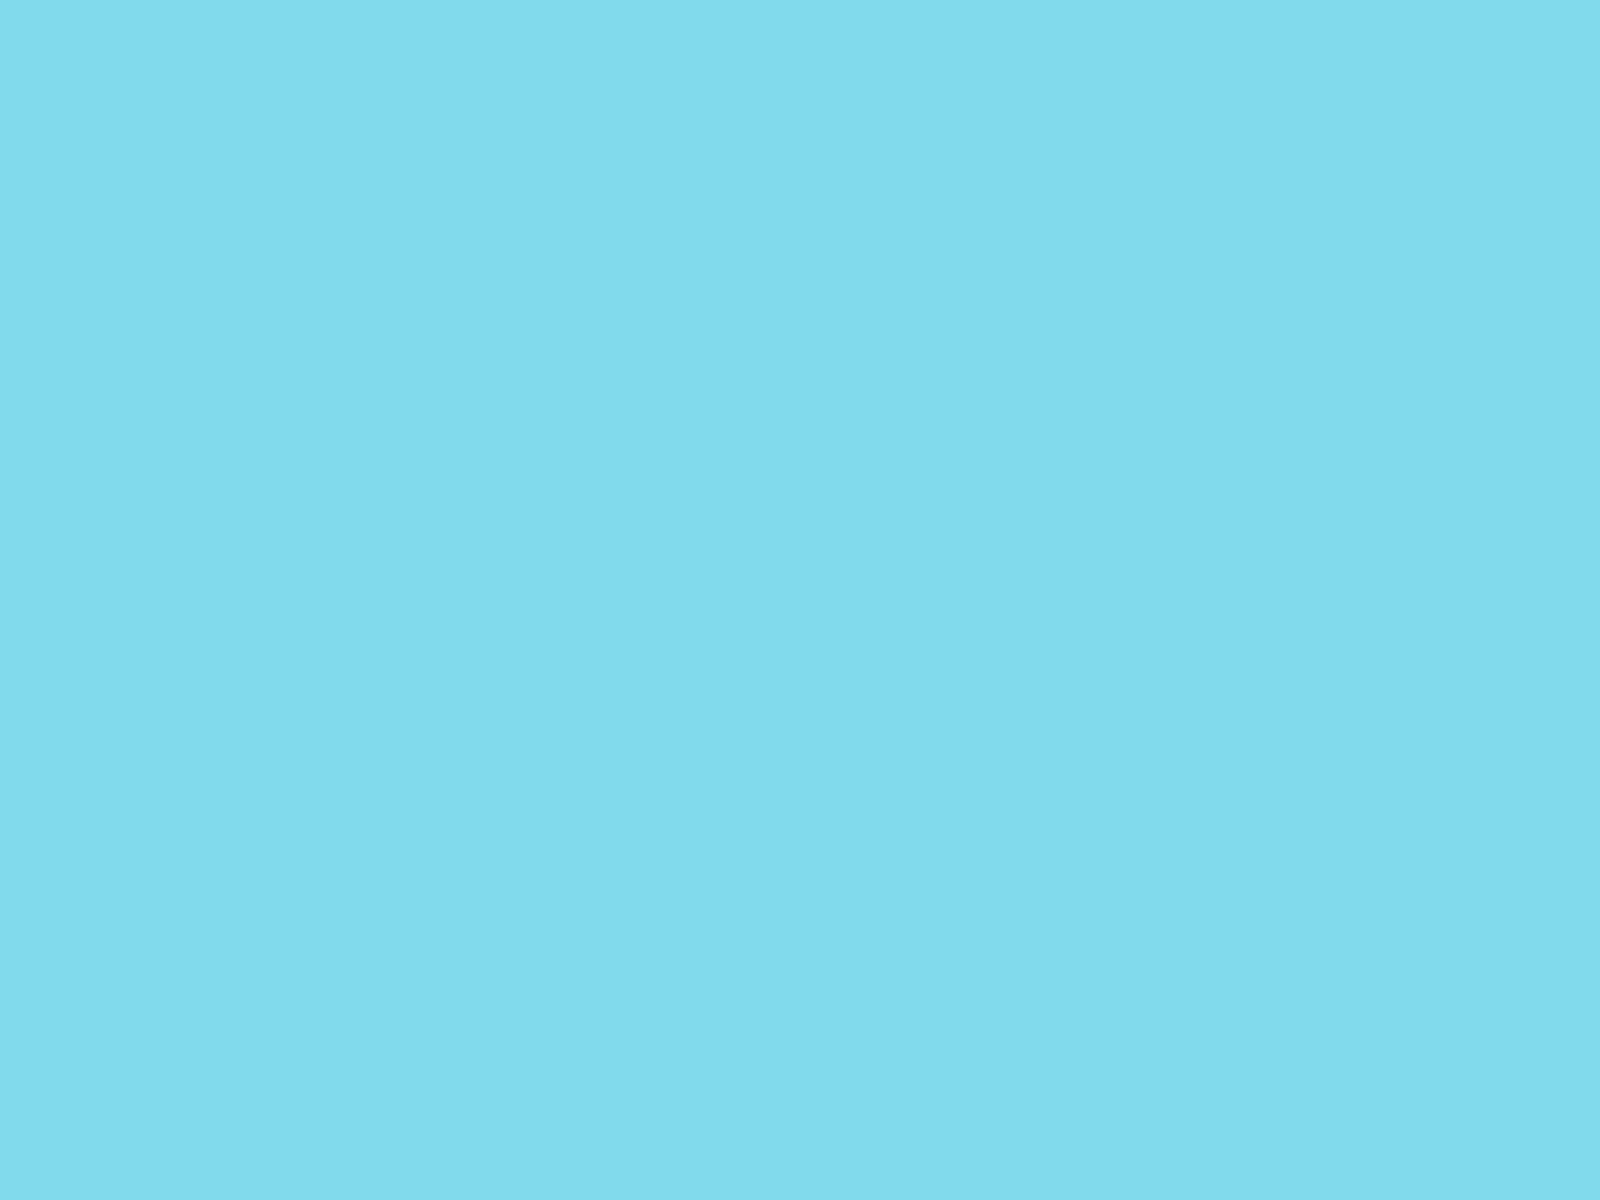 1600x1200 Medium Sky Blue Solid Color Background